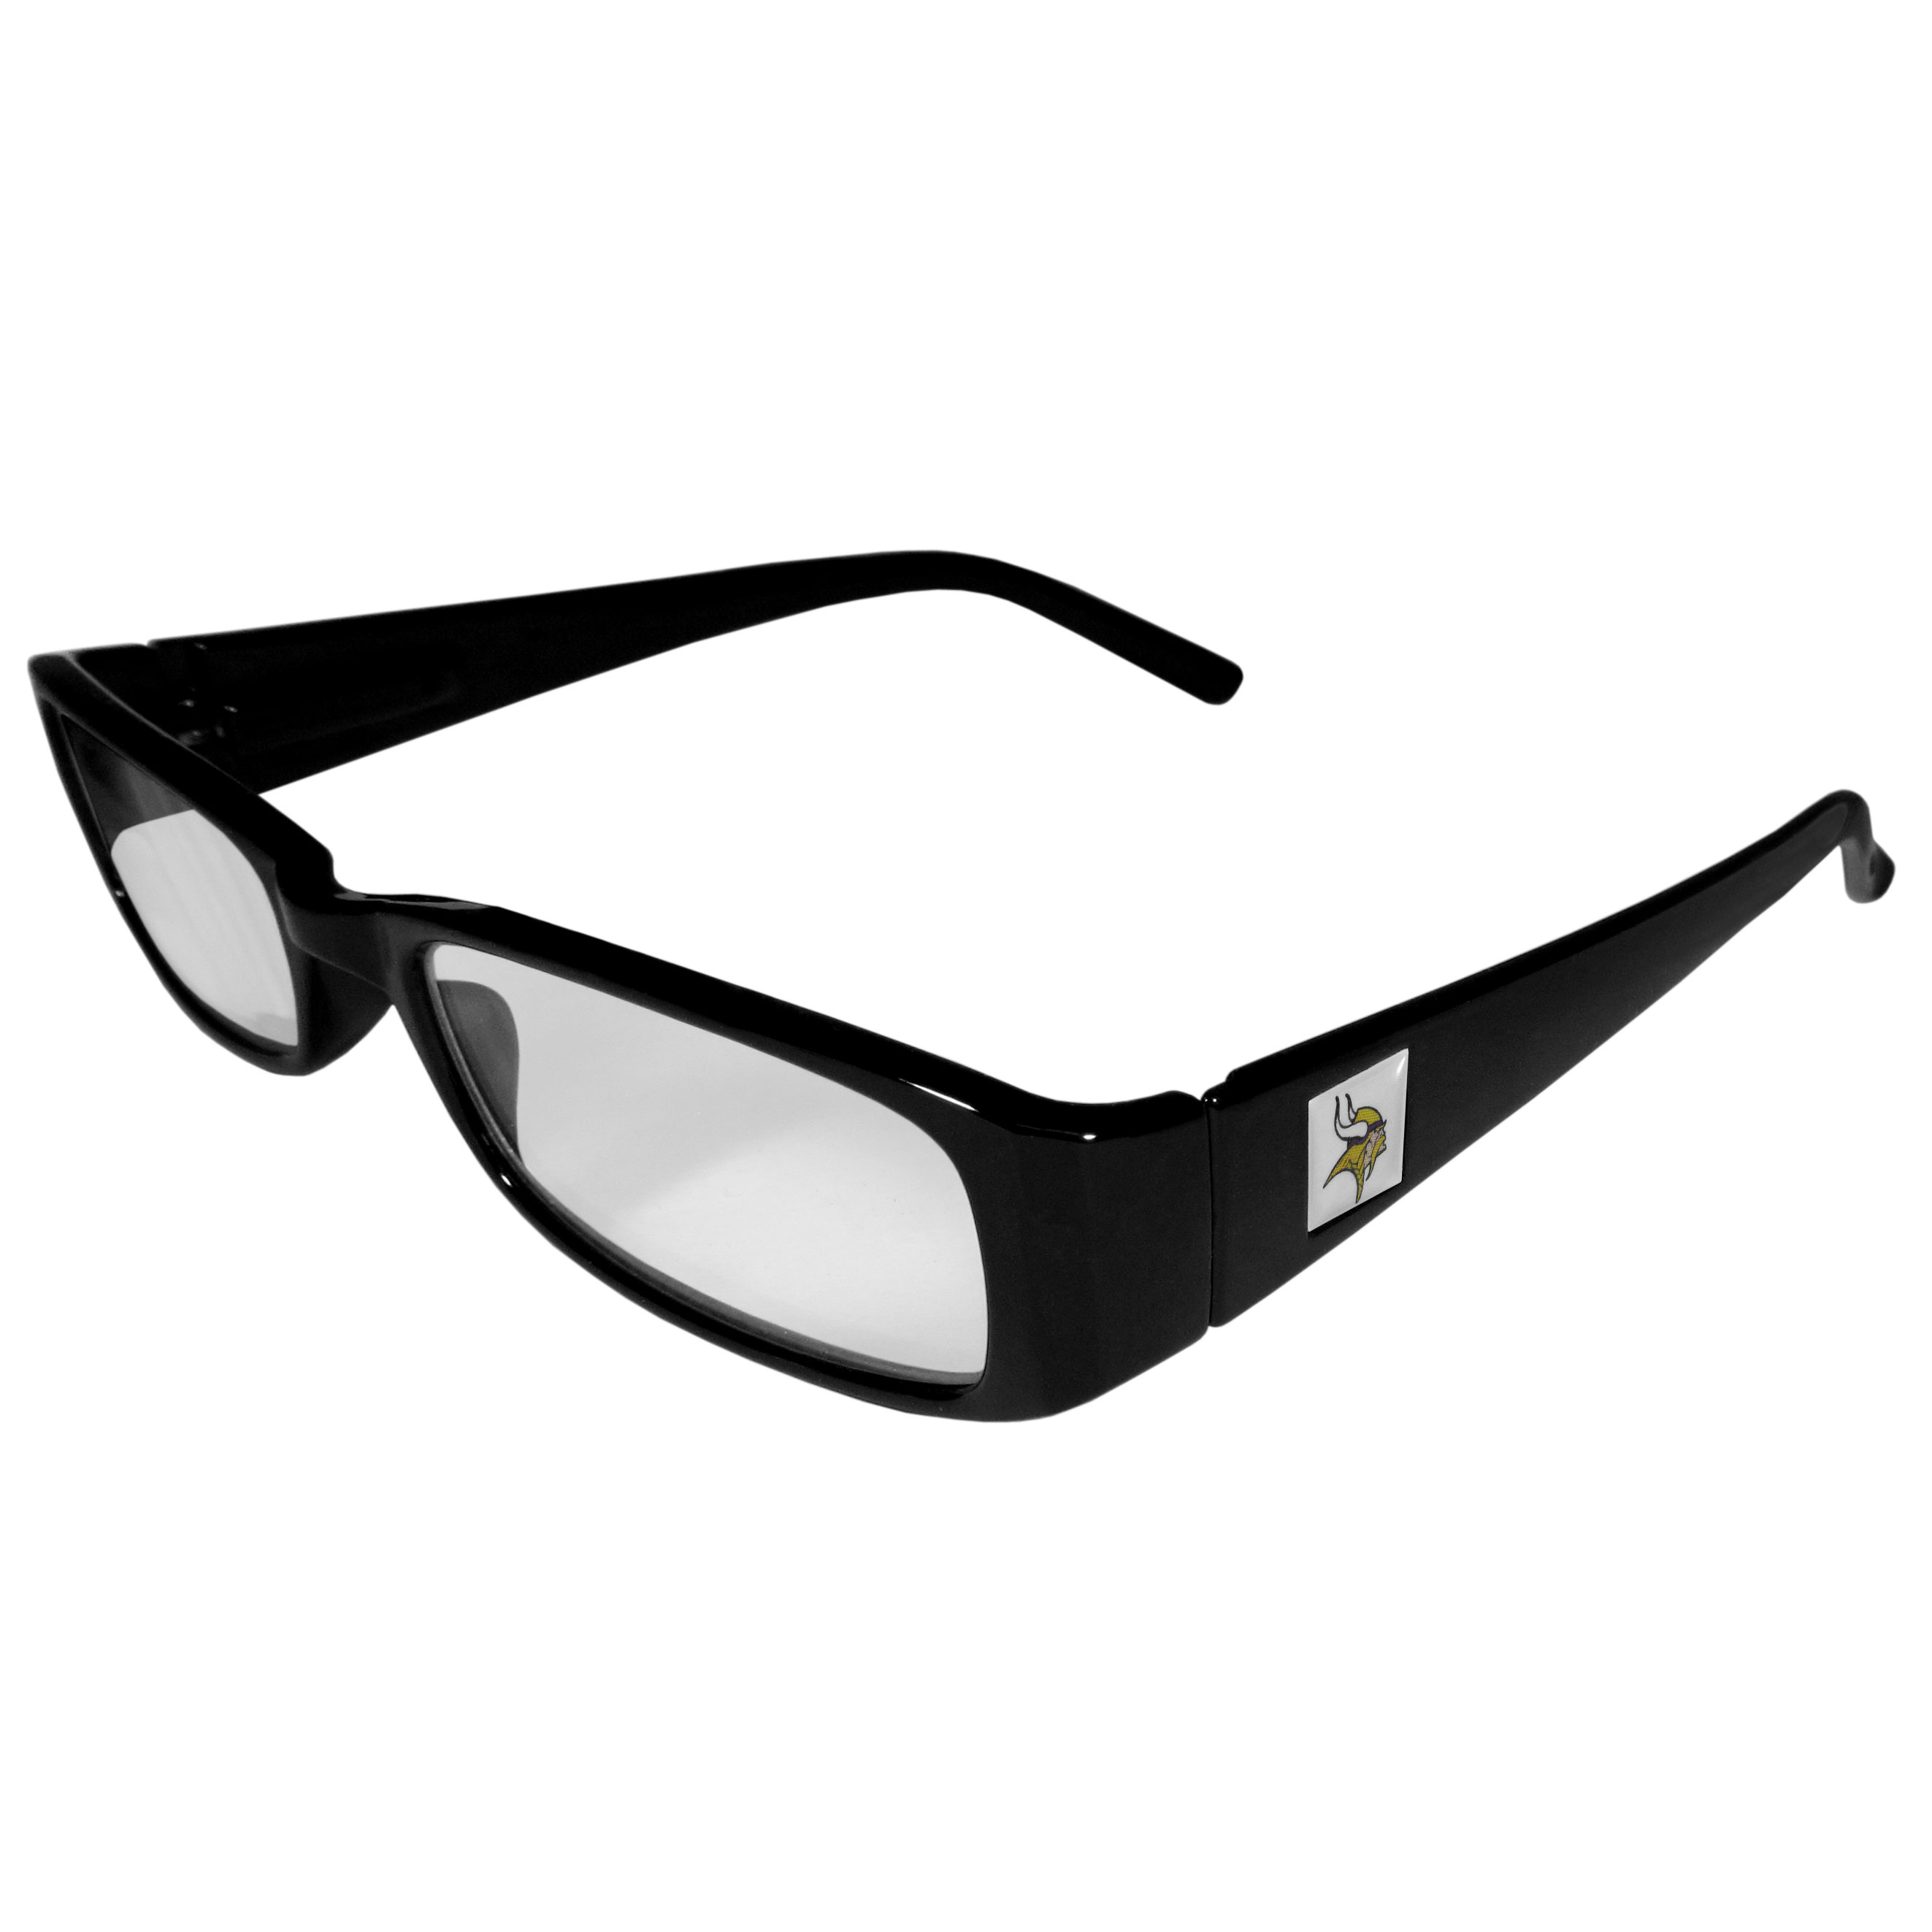 Minnesota Vikings Black Reading Glasses +1.25 - Our Minnesota Vikings reading glasses are 5.25 inches wide and feature the team logo on each arm. Magnification Power 1.25